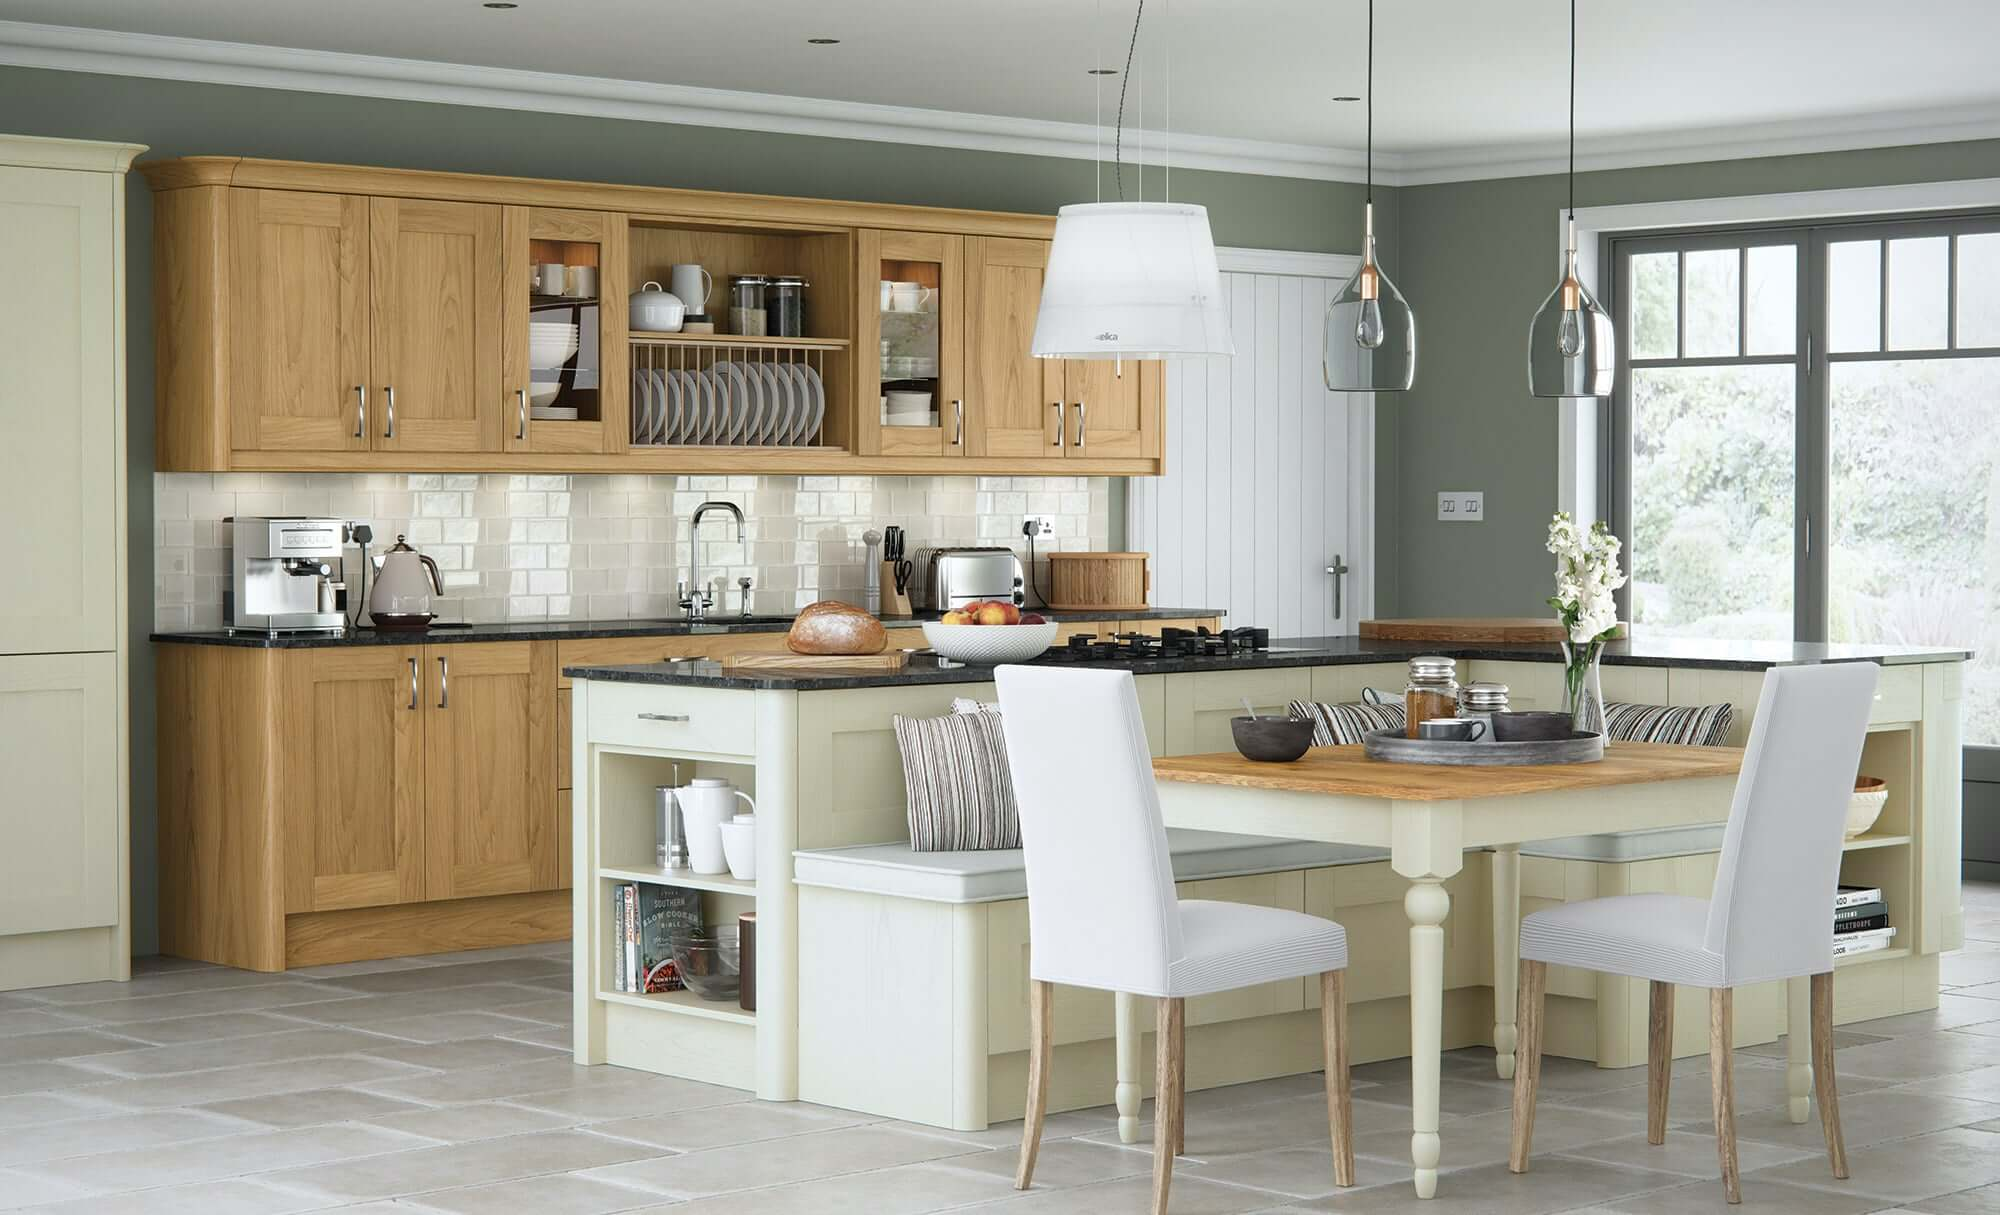 Painted ivory kitchen